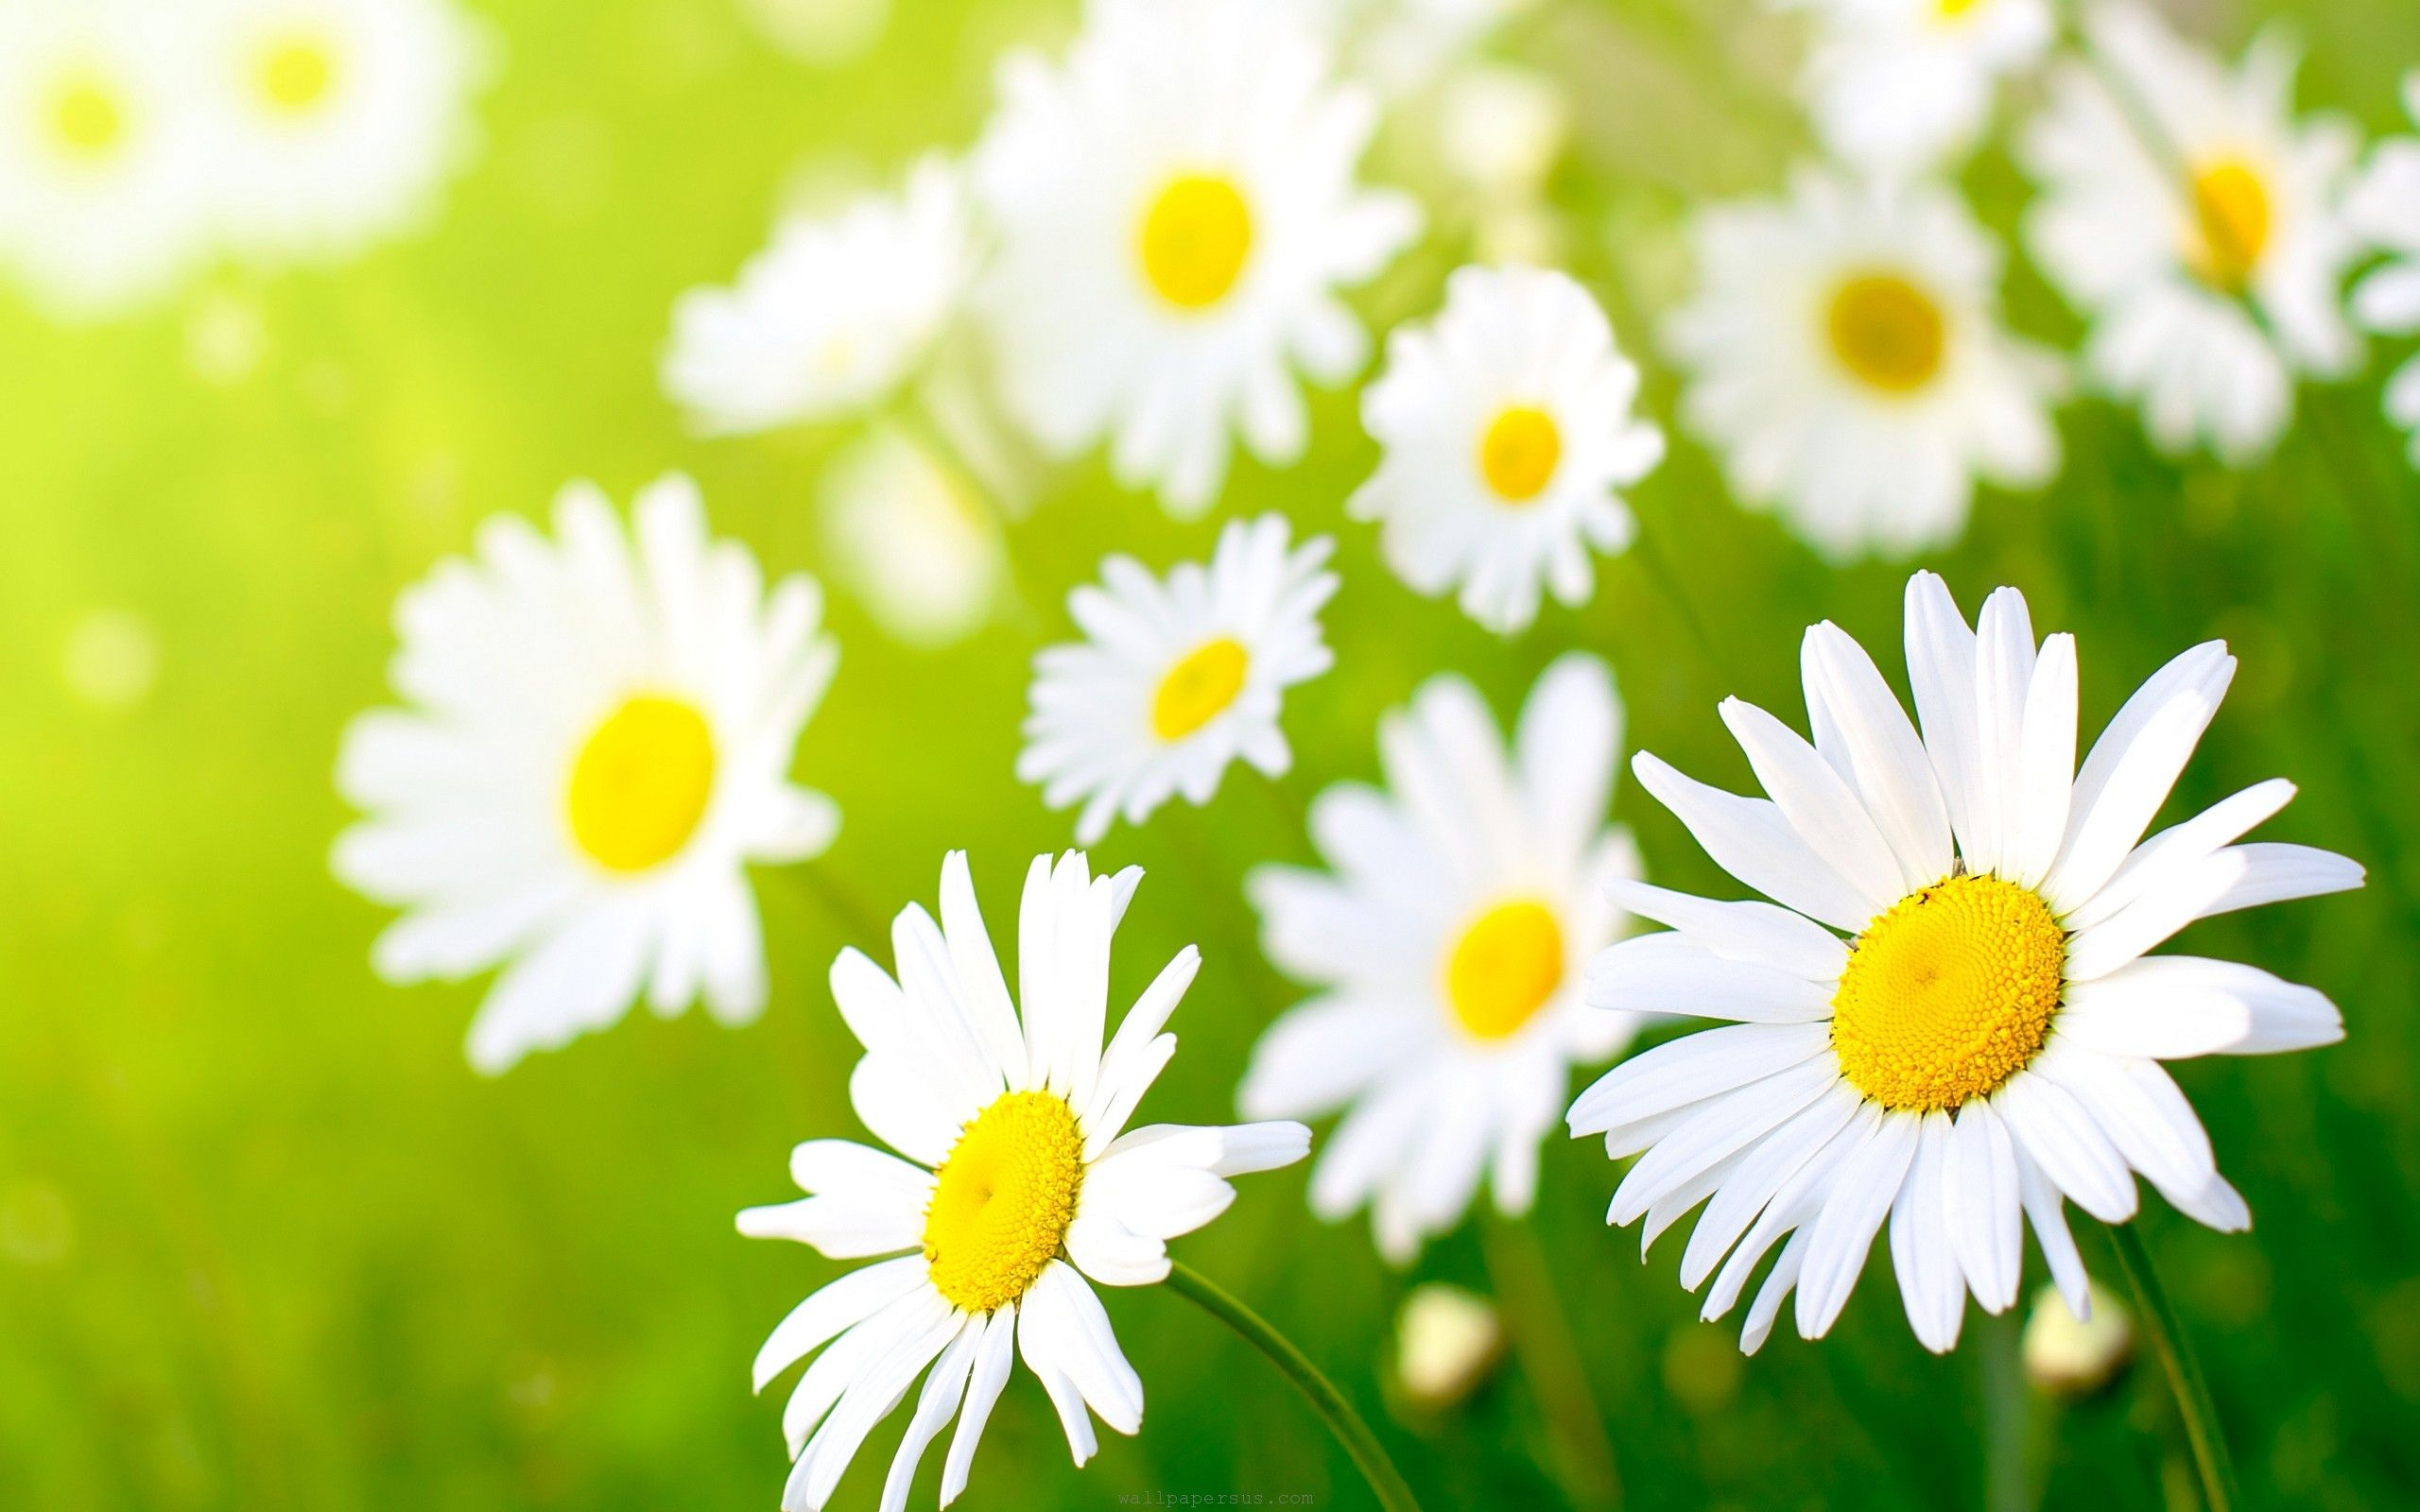 Daisies pictures flowers daisies beauty colors daisy field daisies pictures flowers daisies beauty colors daisy field flowers wallpapersus izmirmasajfo